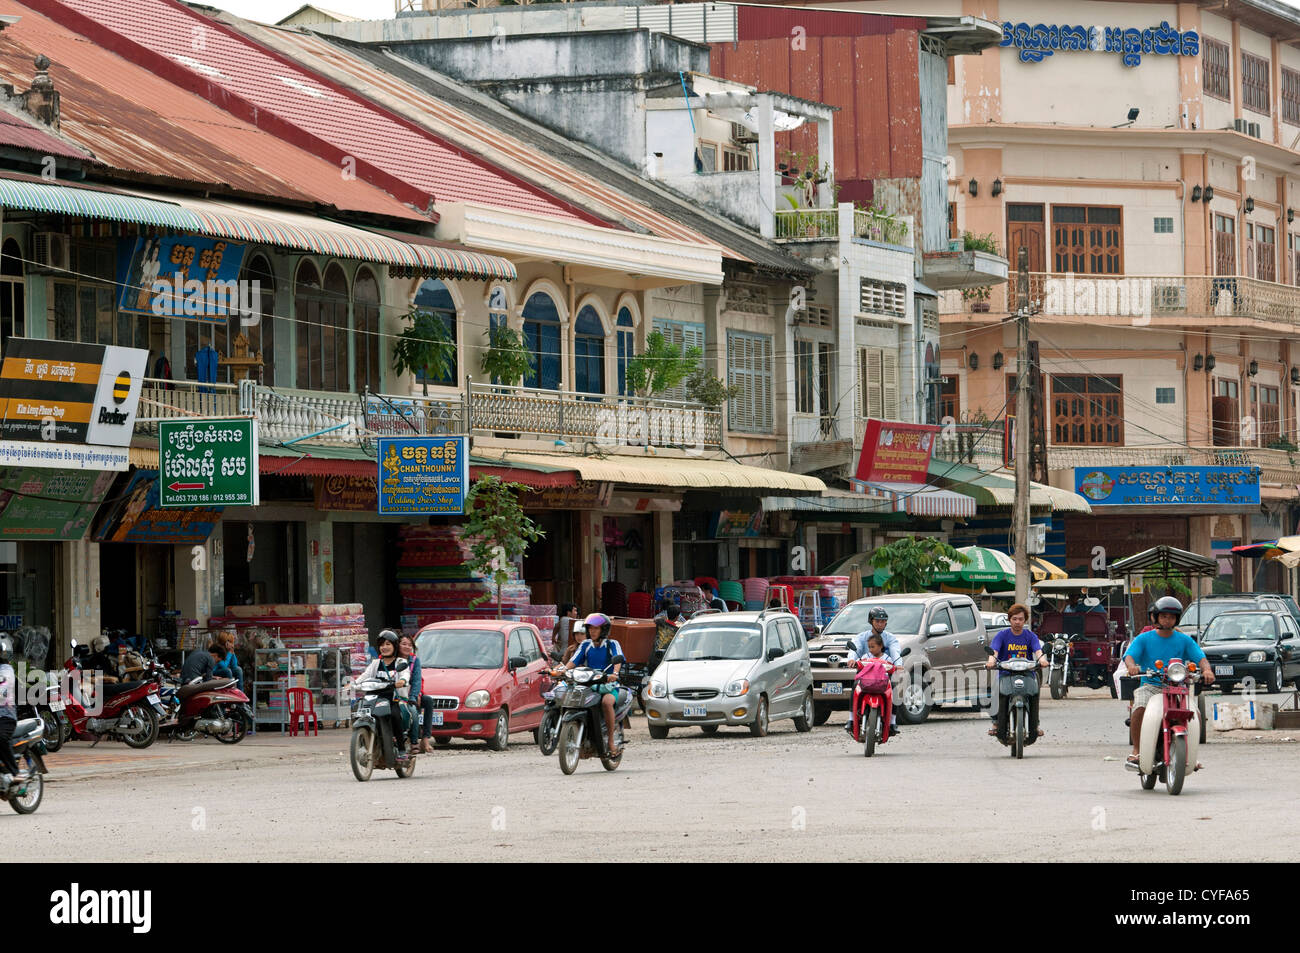 Street scene in the town centre of Battambang, Cambodia - Stock Image